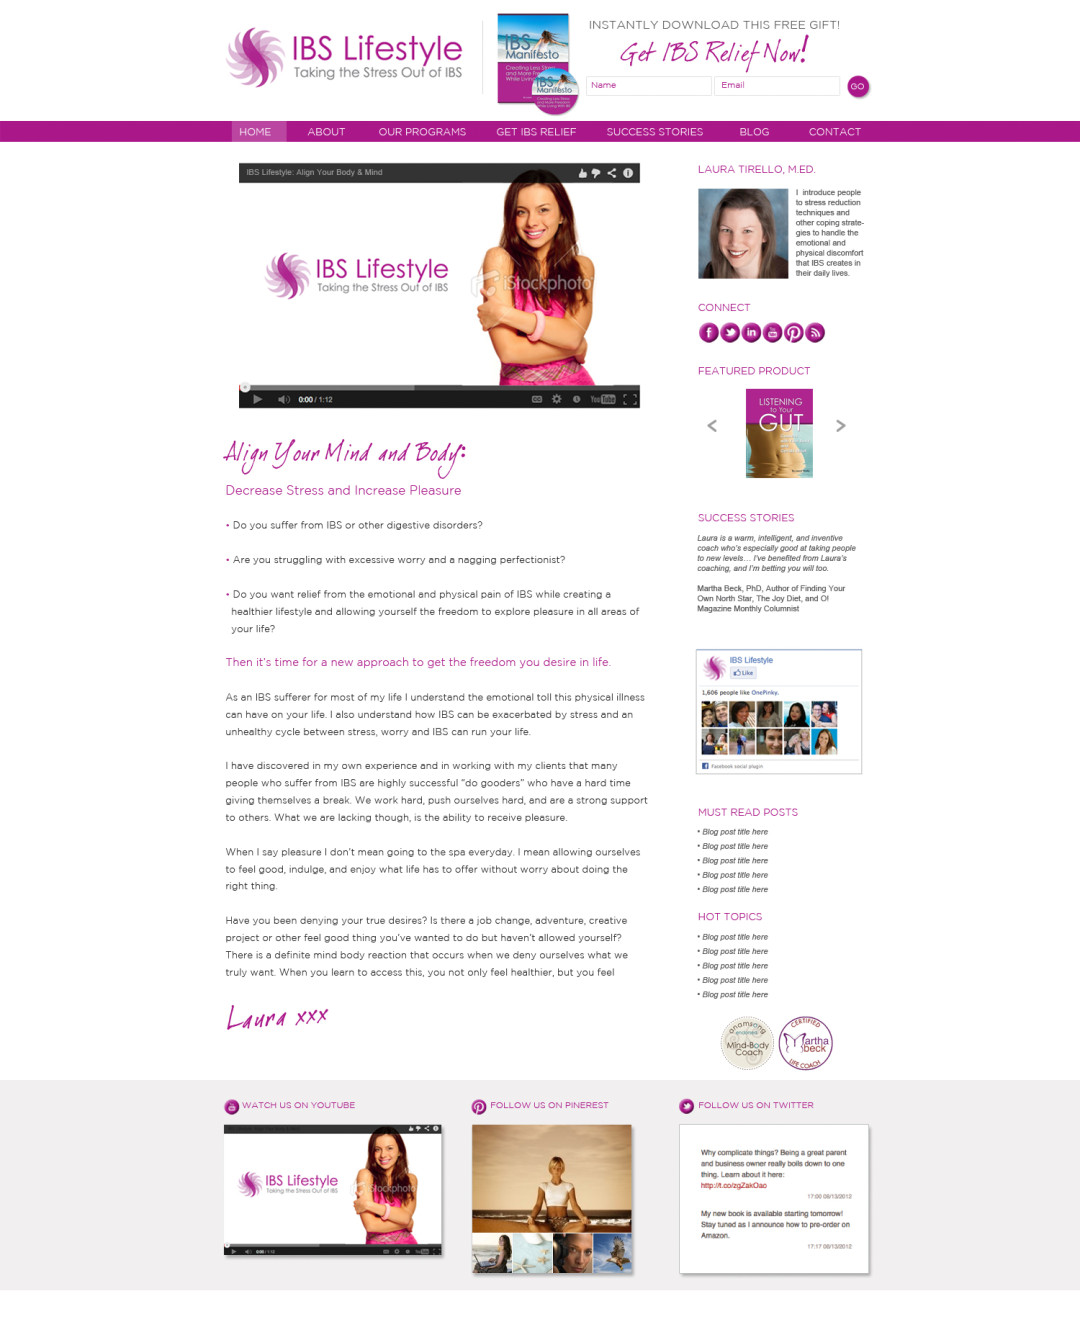 Custom Designed Wordpress Website for Laura Tirello